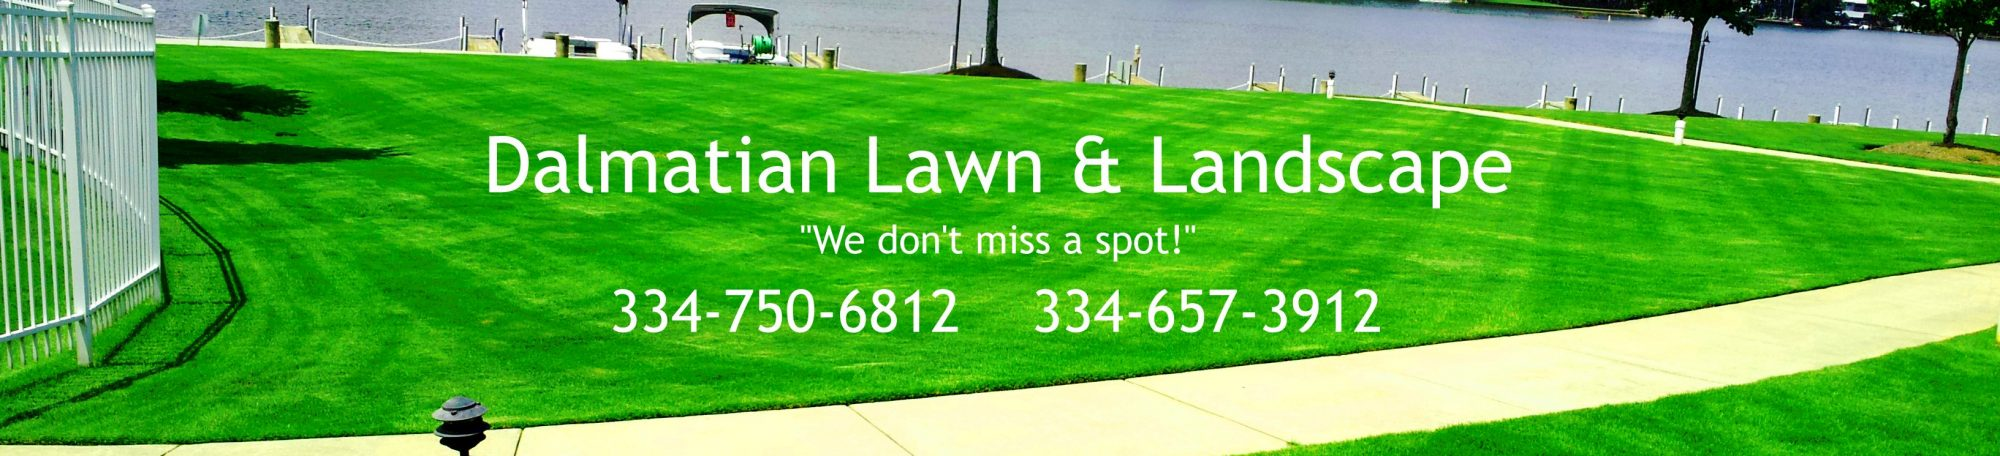 Dalmatian Lawn & Landscape. Serving Auburn and Opelika since 2010!